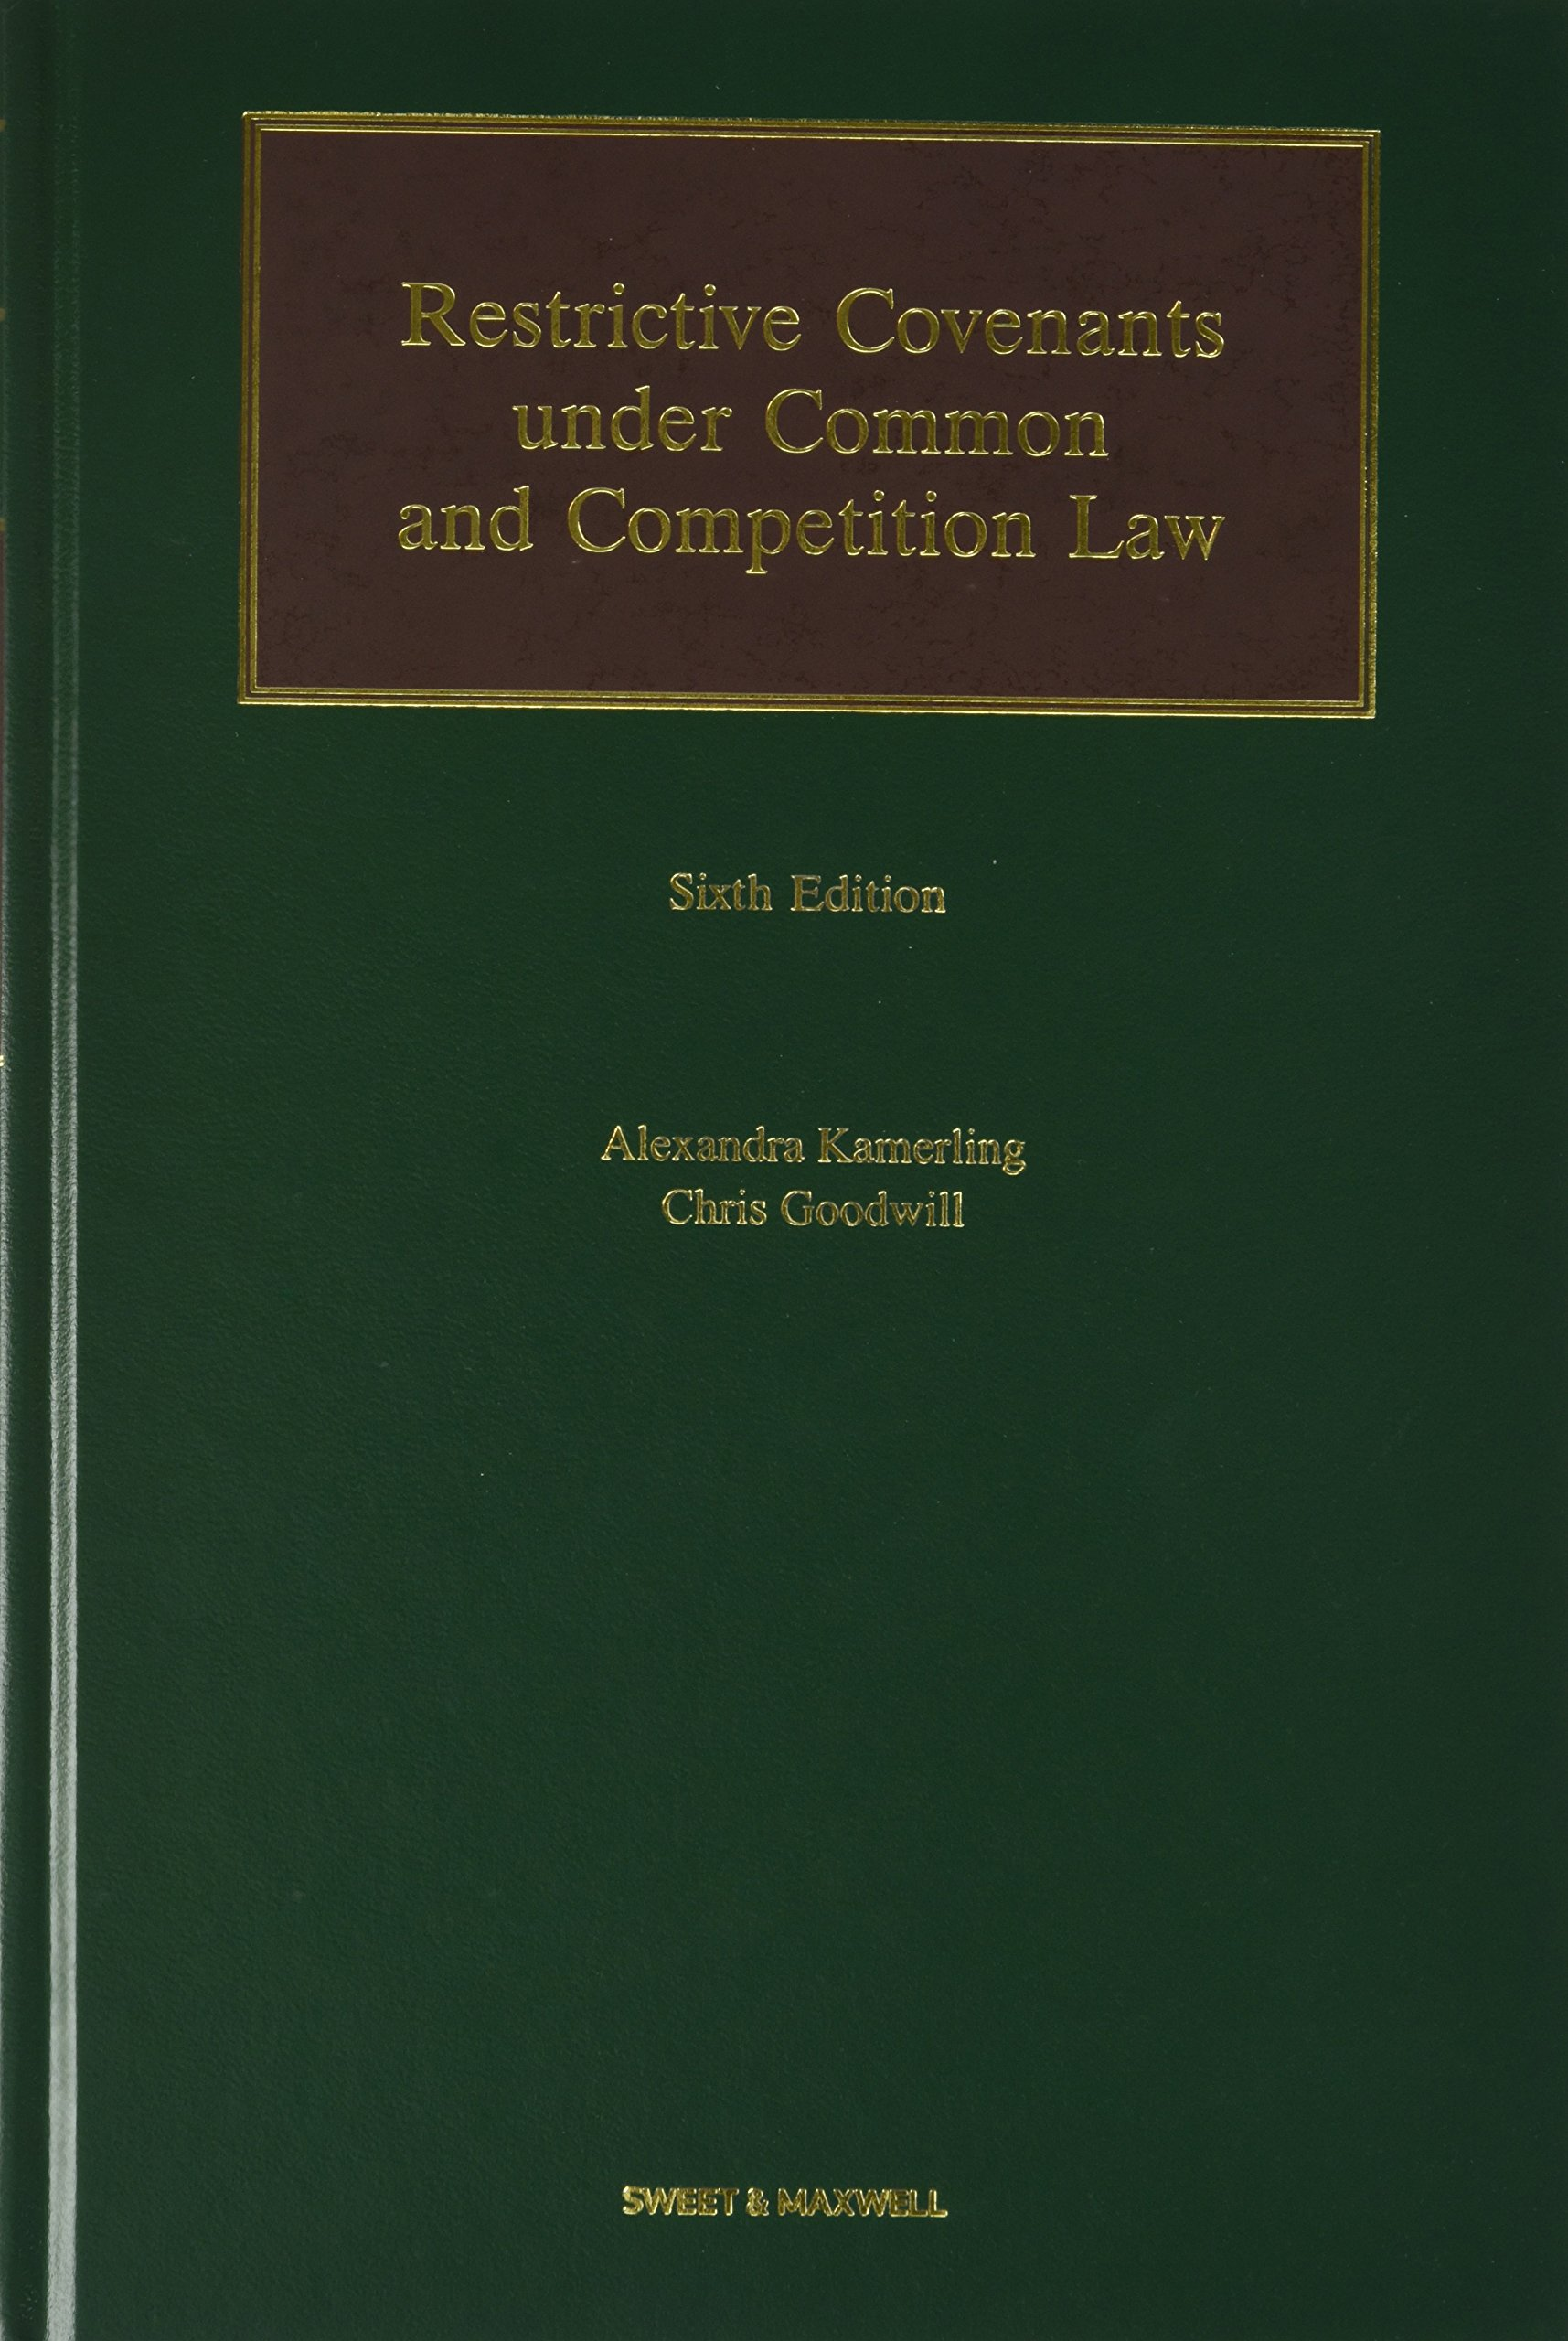 Buy Restrictive Covenants Under Common And Competition Law Book Online At Low Prices In India Restrictive Covenants Under Common And Competition Law Reviews Ratings Amazon In It sounds elvish in origin, but is harsher and probably contains loan words from the languages of the other races of the underdark. amazon in